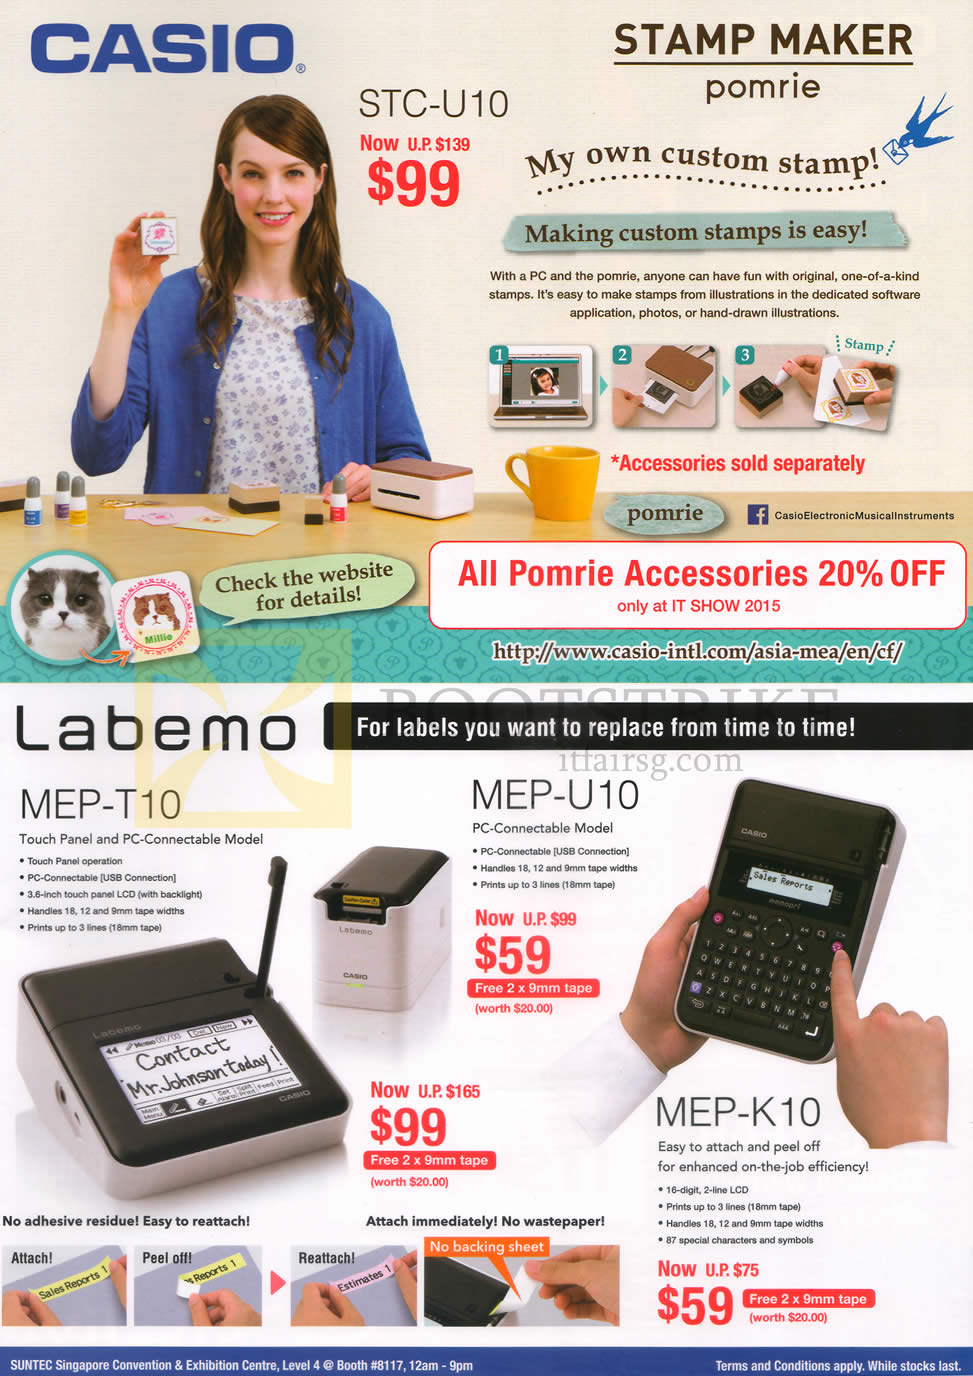 IT SHOW 2015 price list image brochure of Casio Stamp Maker, Labeller, STC-U10, Labemo MEP-T10, U10, K10, Pomrie